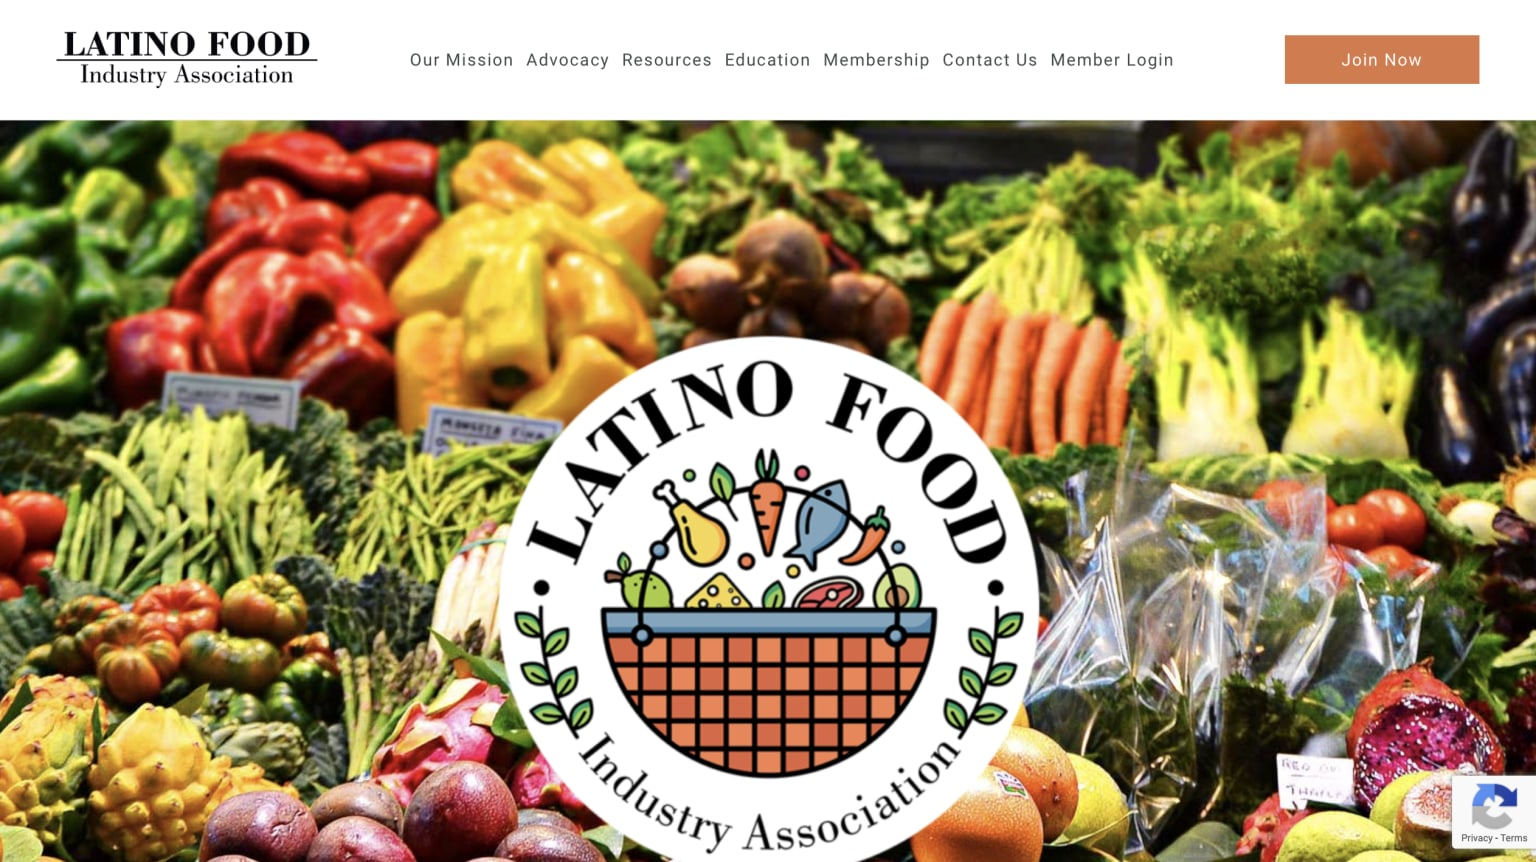 Latino Food Industry Association New Website